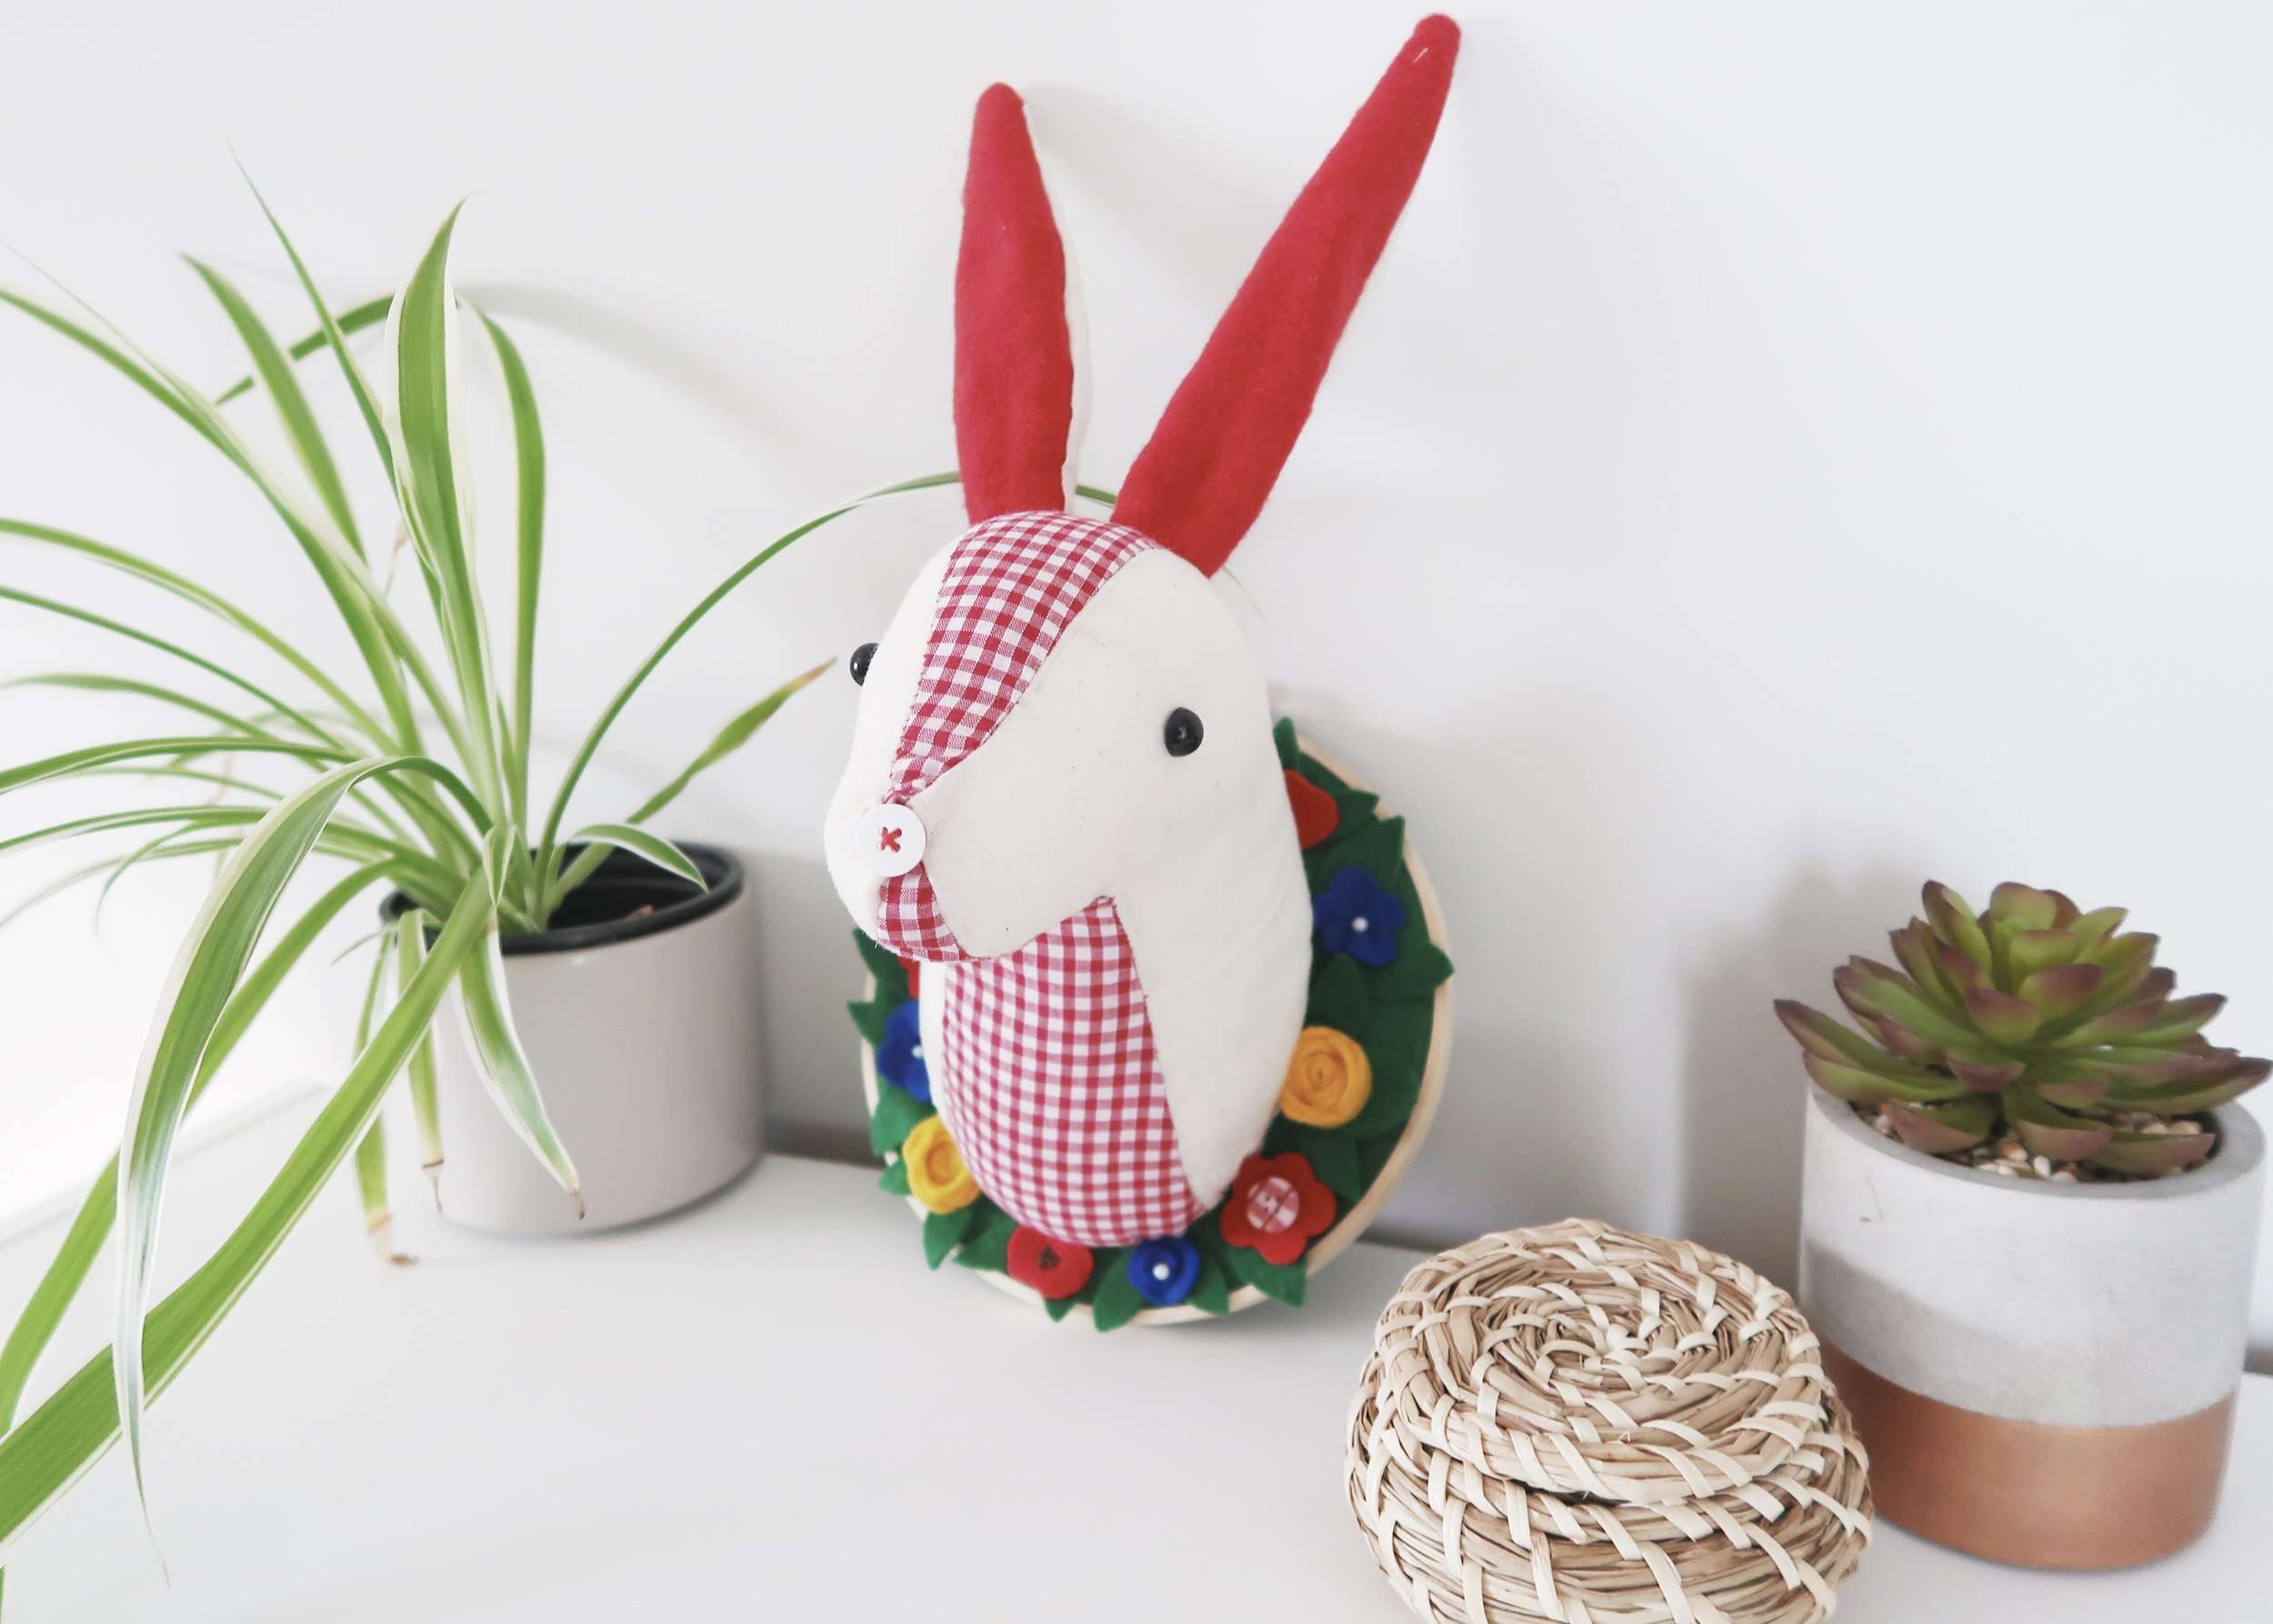 DIY March Hare with Makerly Crafts by Isoscella